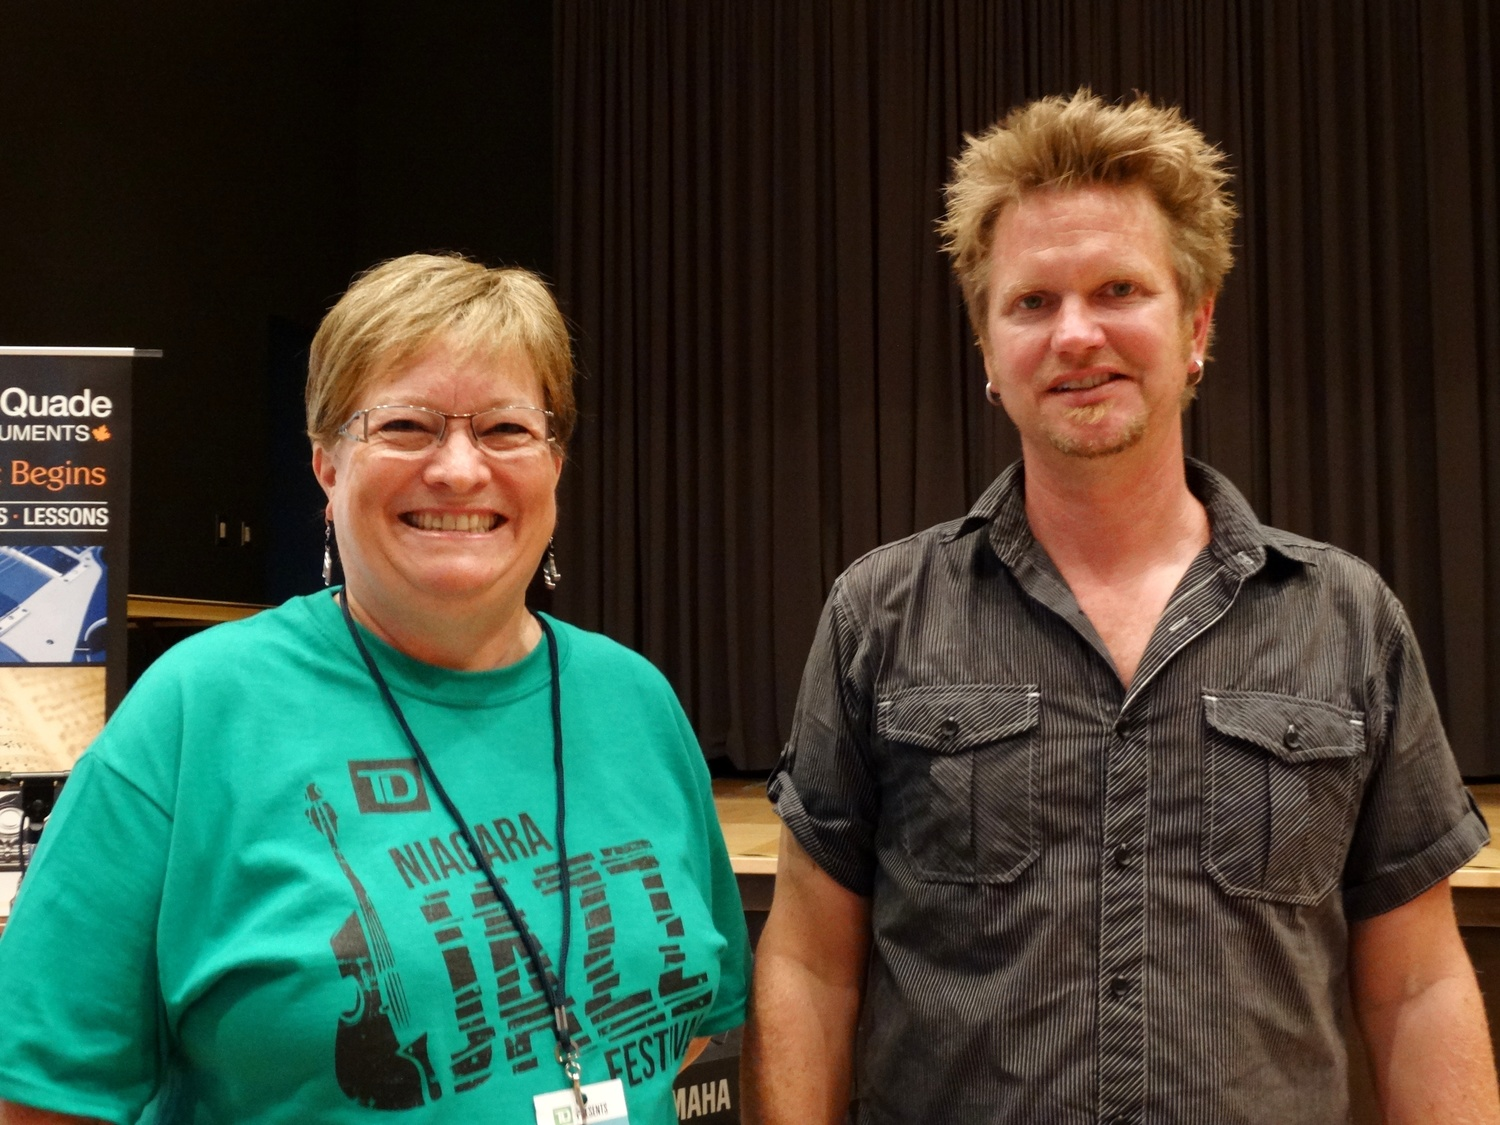 Helping out at the Vocal jazz workshop with Broadsway - July 25, 2015 Niagara-on-the-Lake Public Library: Volunteer Deborah Levere & Festival co-creator/Artistic Consulant: Peter Shea. Photo: Snapd